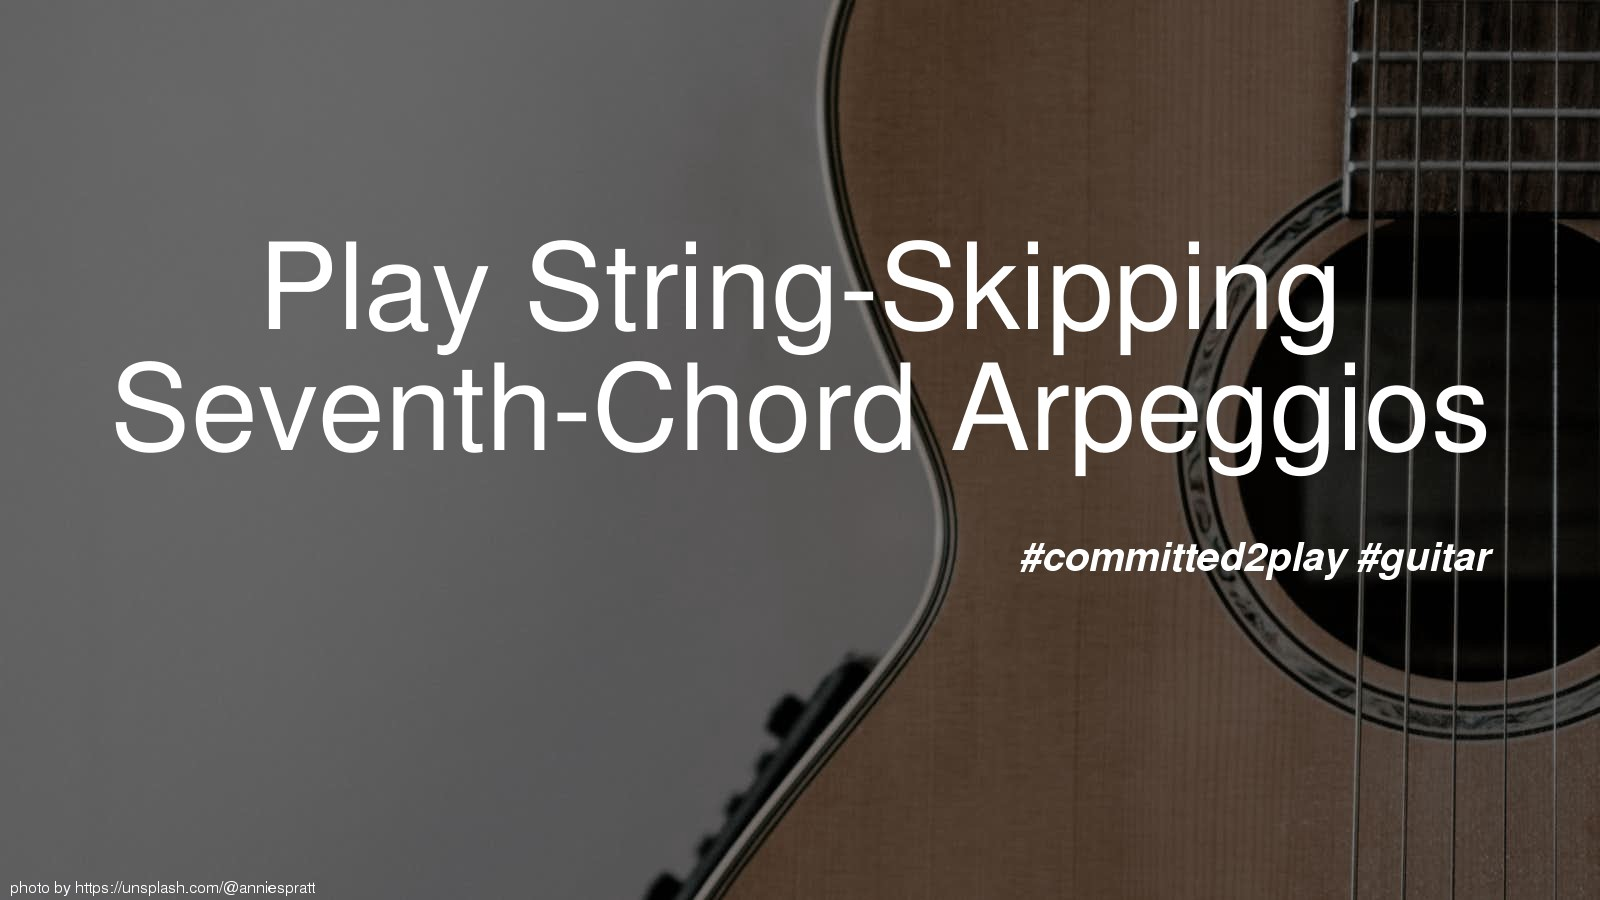 Play String-Skipping Seventh-Chord Arpeggios